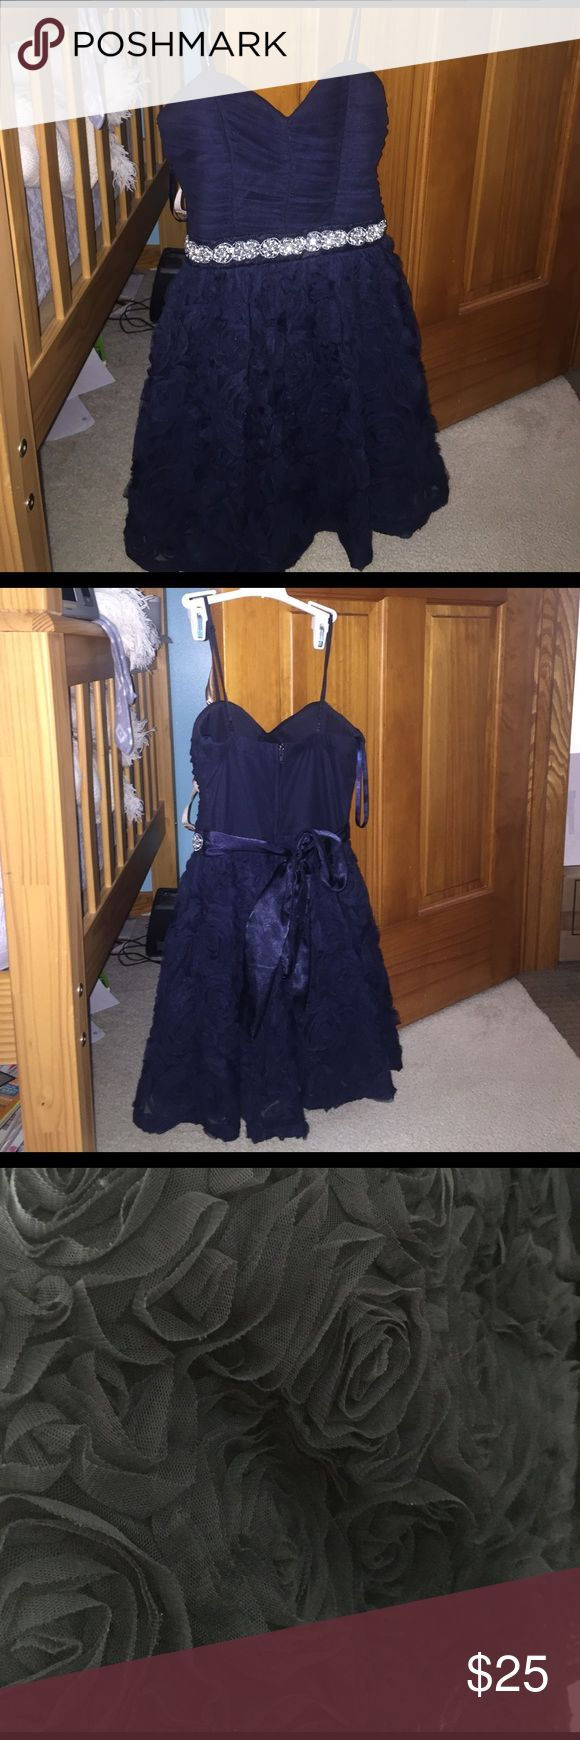 Navy blue formal dress Only worn once for homecoming! Short navy blue dress with a floral textured skirt (as shown in 3rd picture). Padded top ! Trixxi Dresses Prom